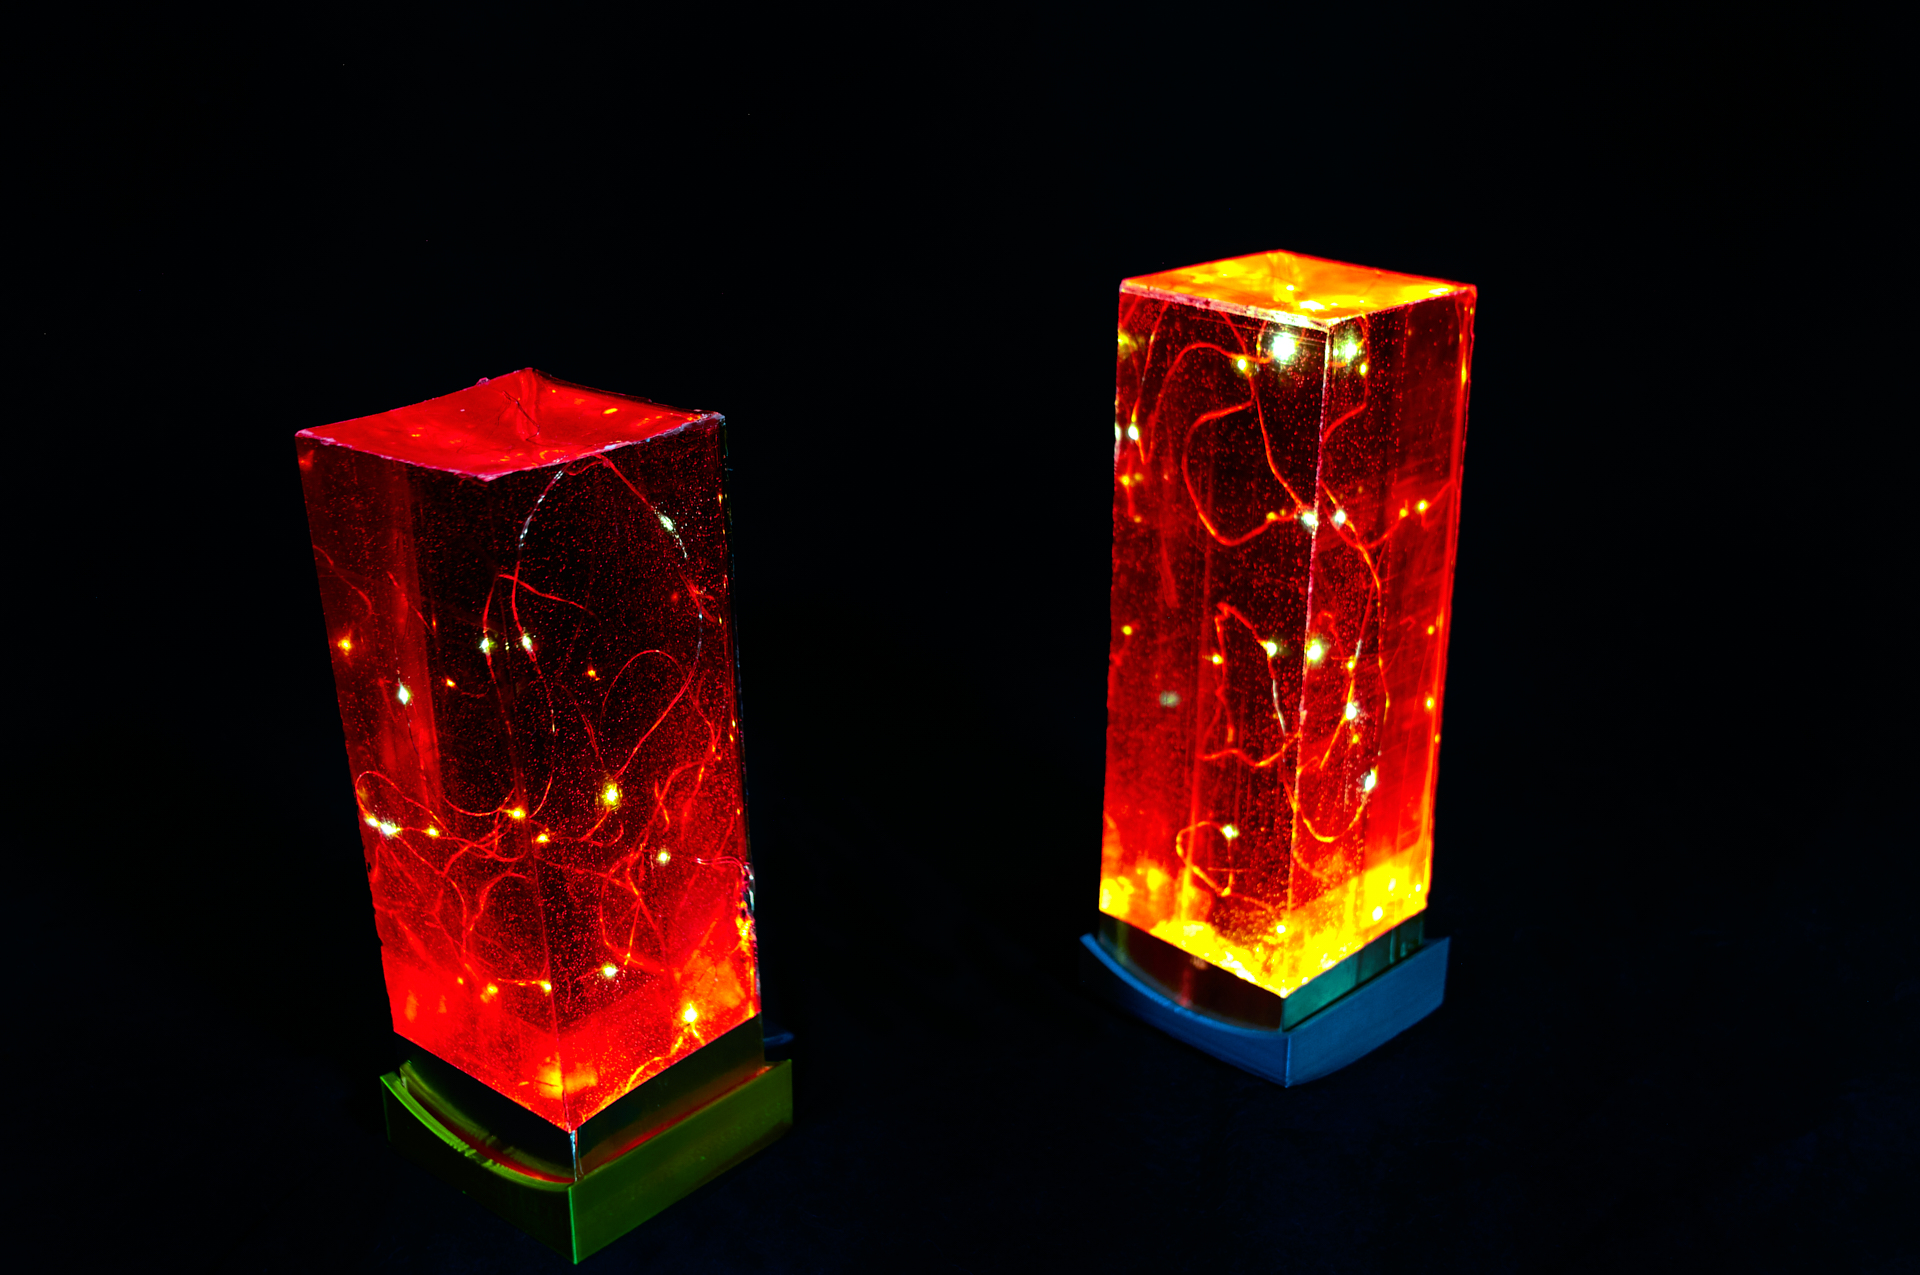 projects_Resin_Torches_03.jpg